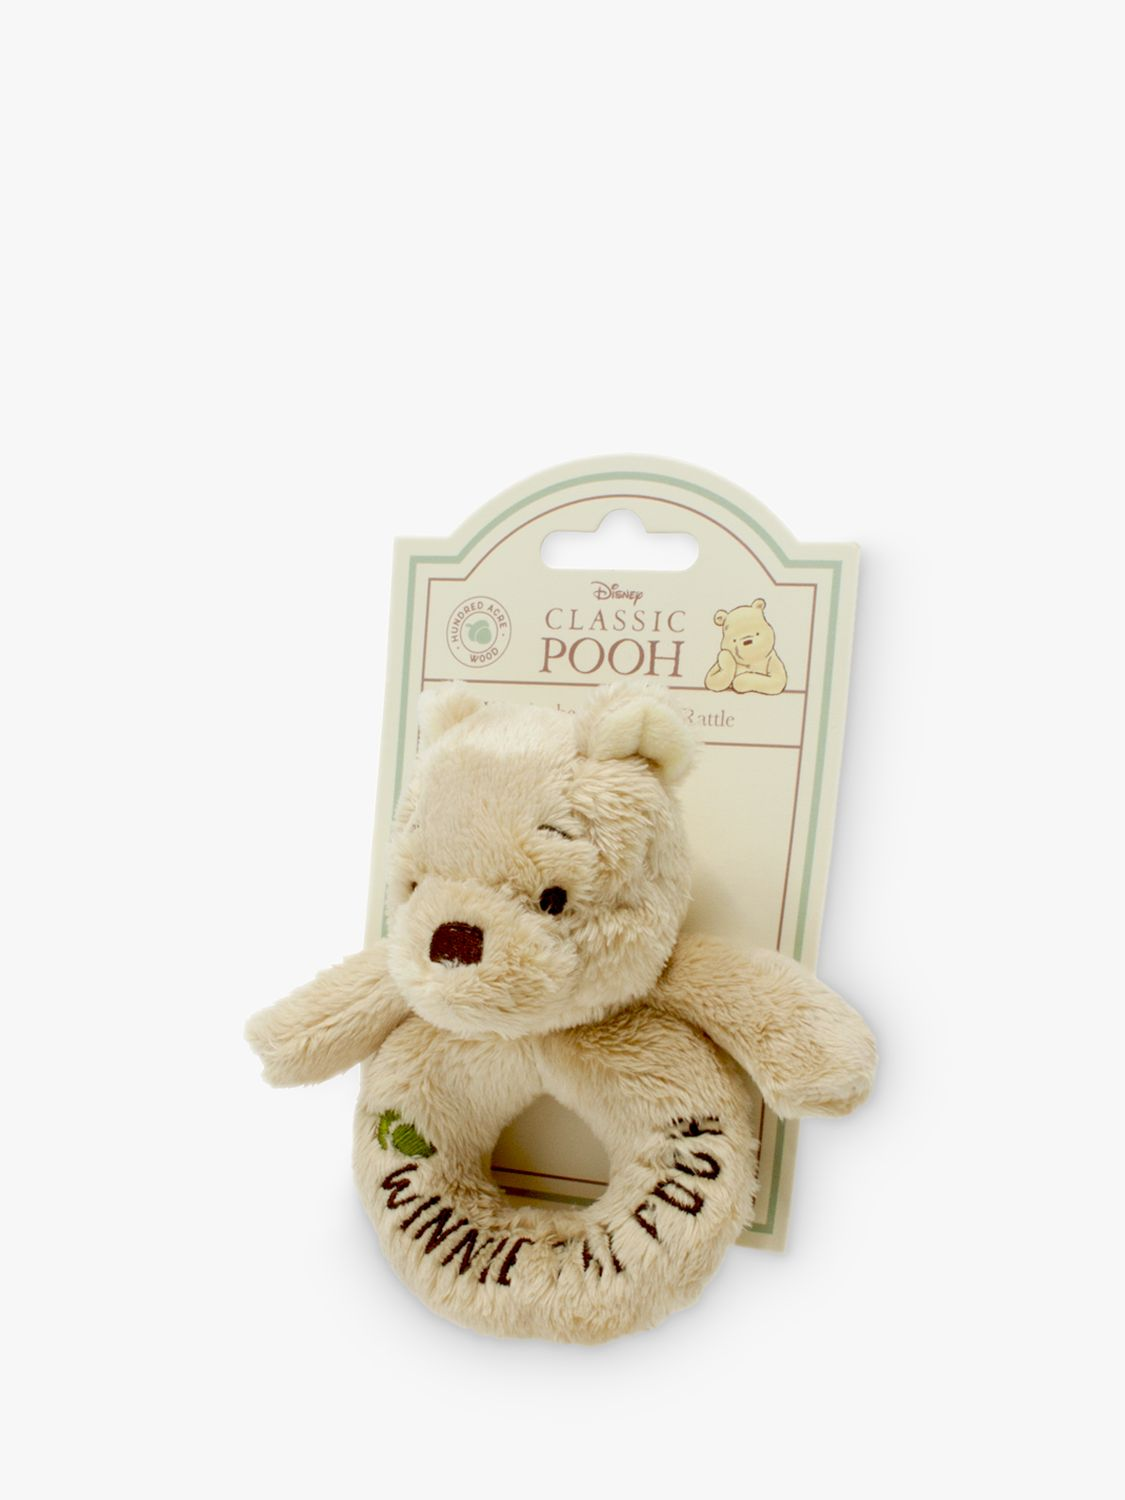 Winnie the pooh Winnie the Pooh Baby Ring Rattle